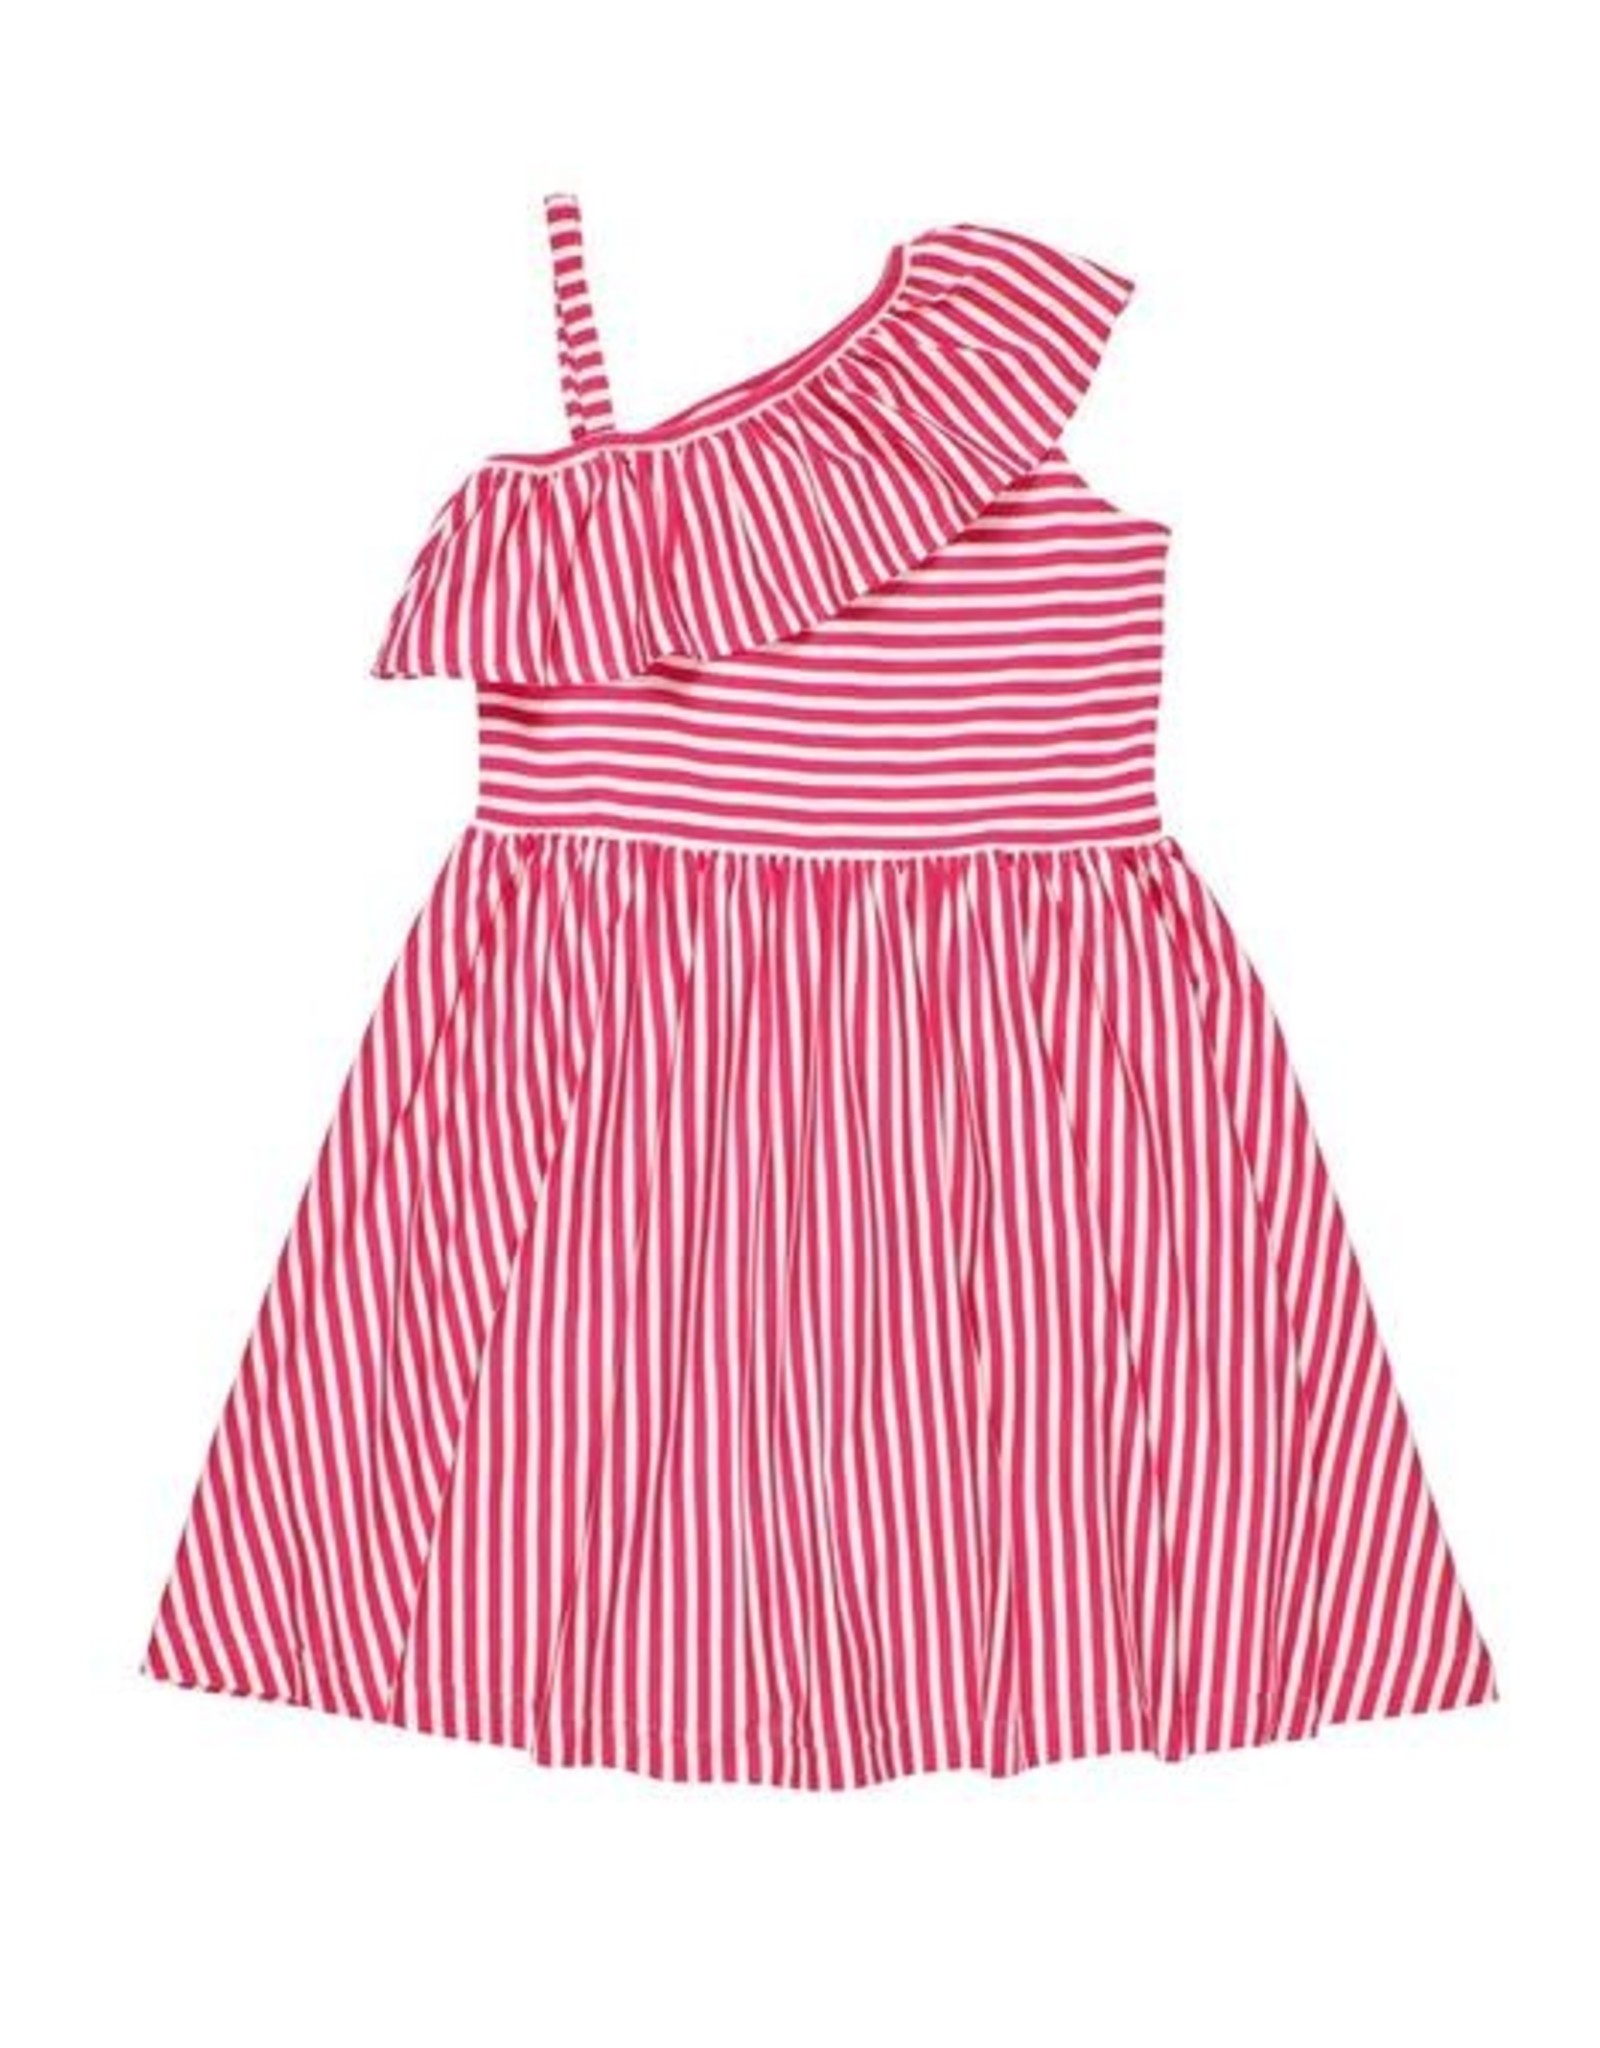 Florence Eiseman One Shoulder Ruffle Dress Red/White Striped